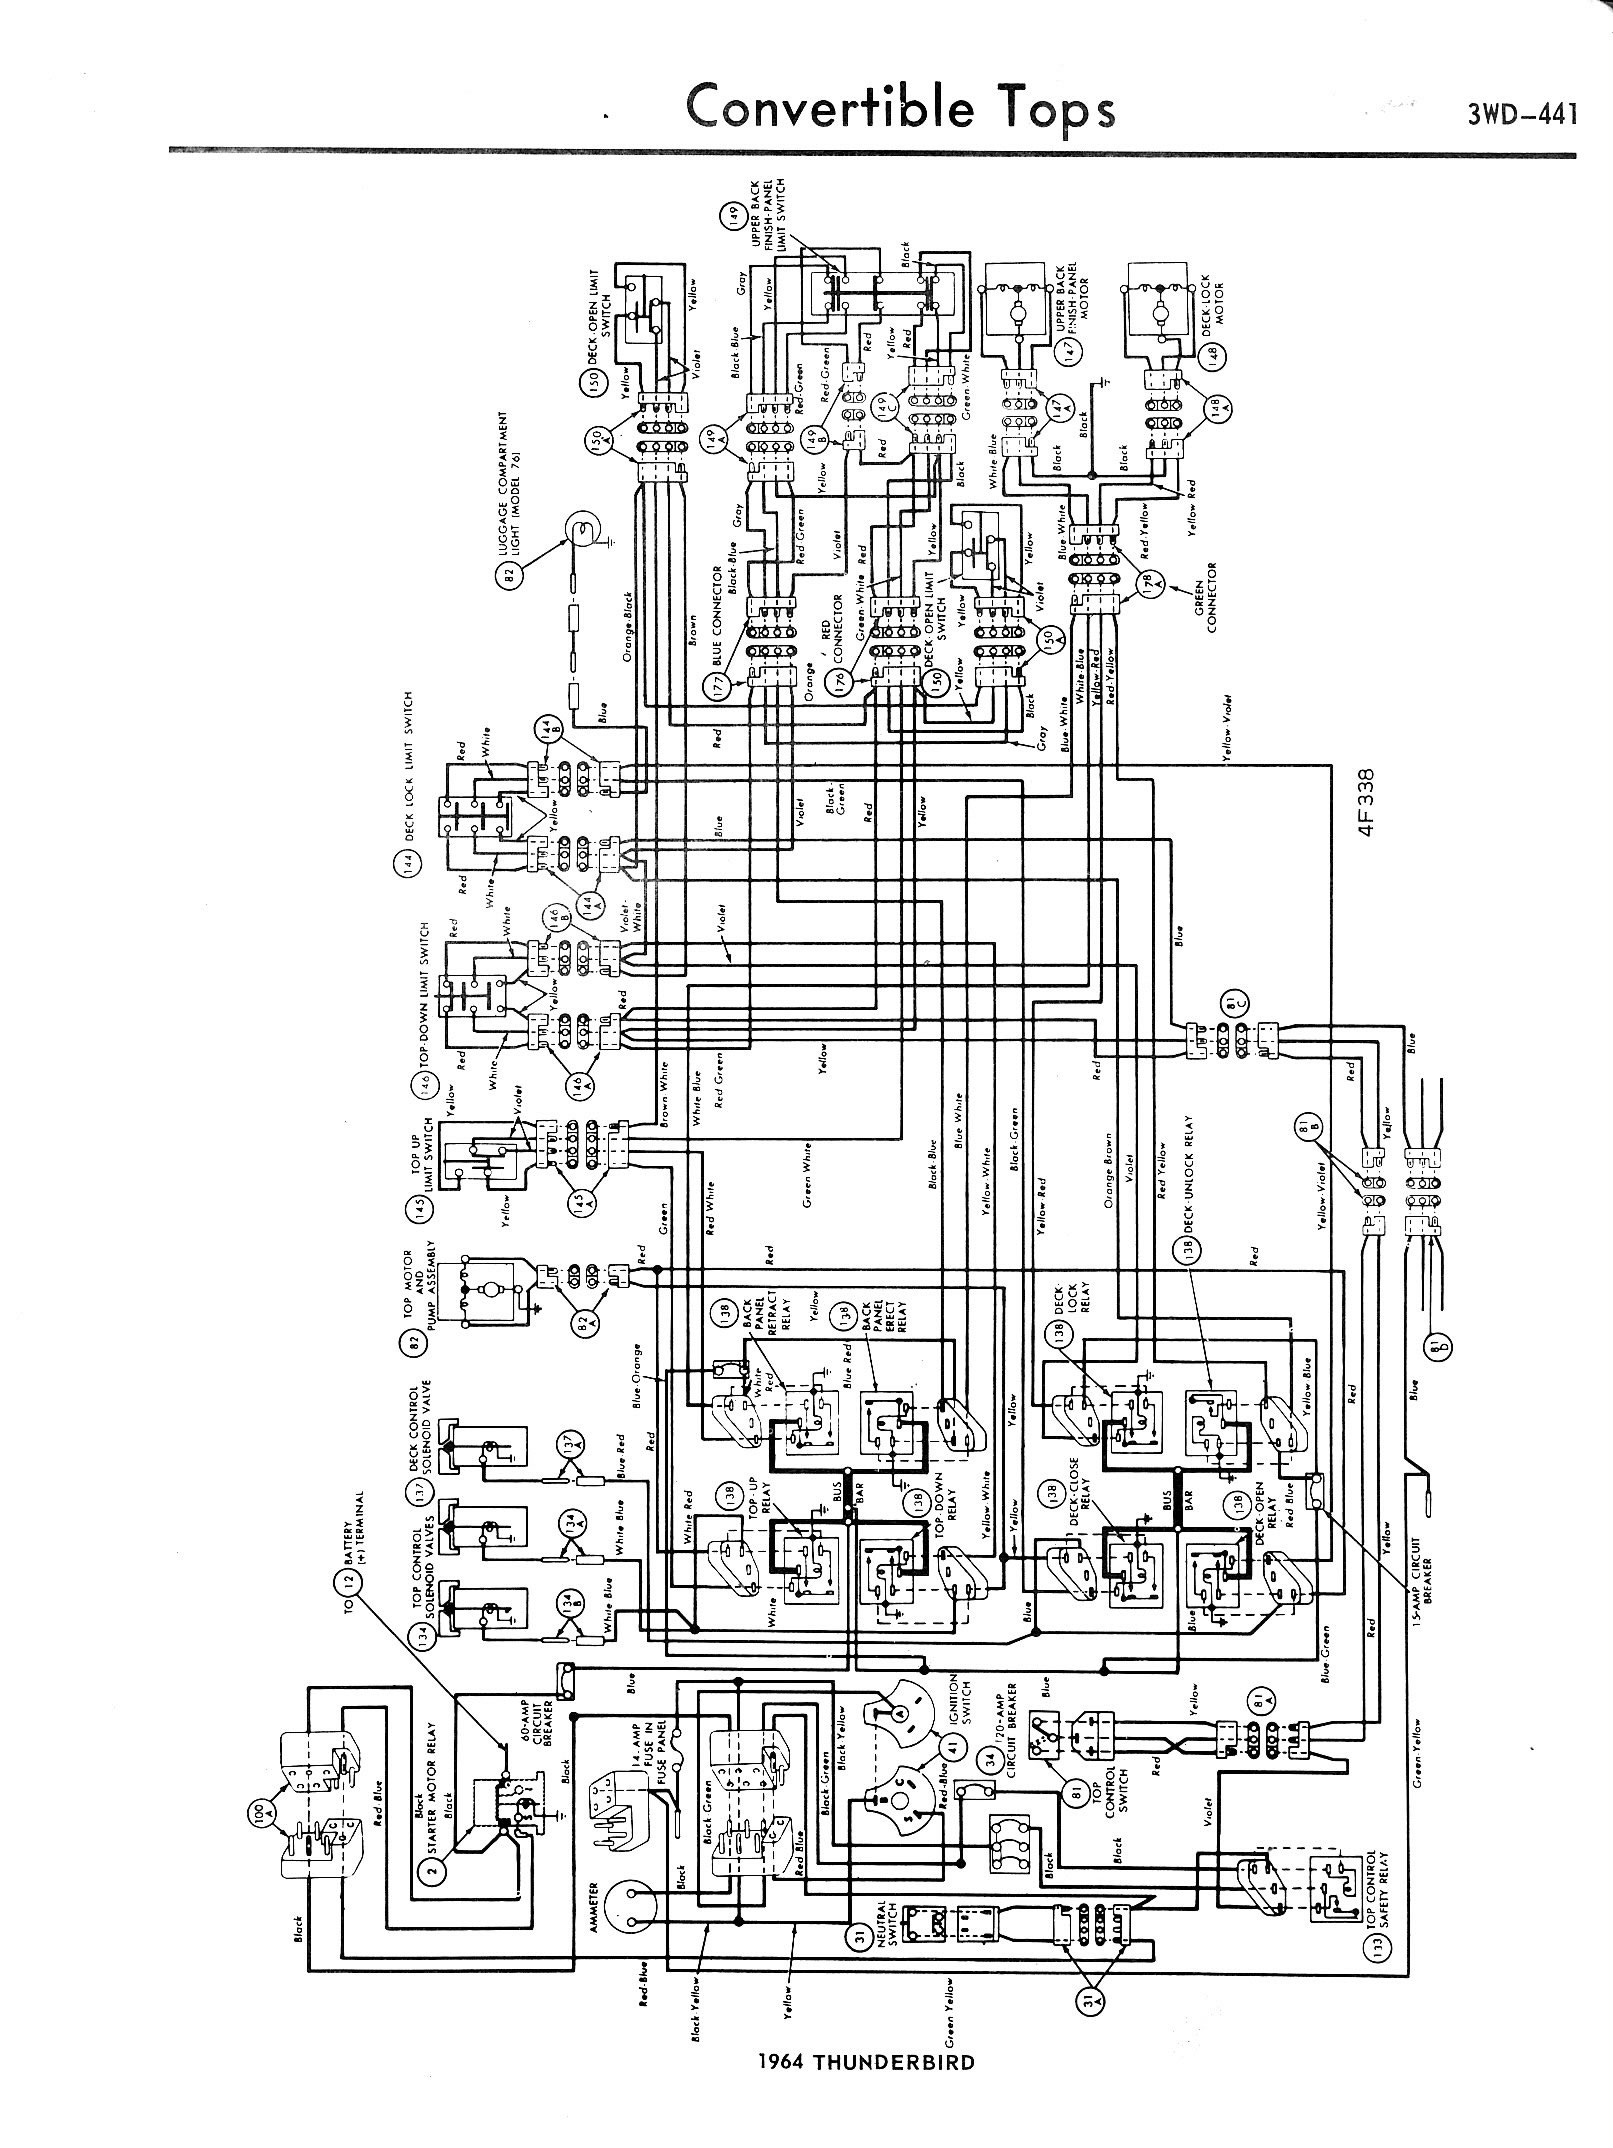 1957-1965 Accessory Wiring Diagrams / 3WD-441.jpg